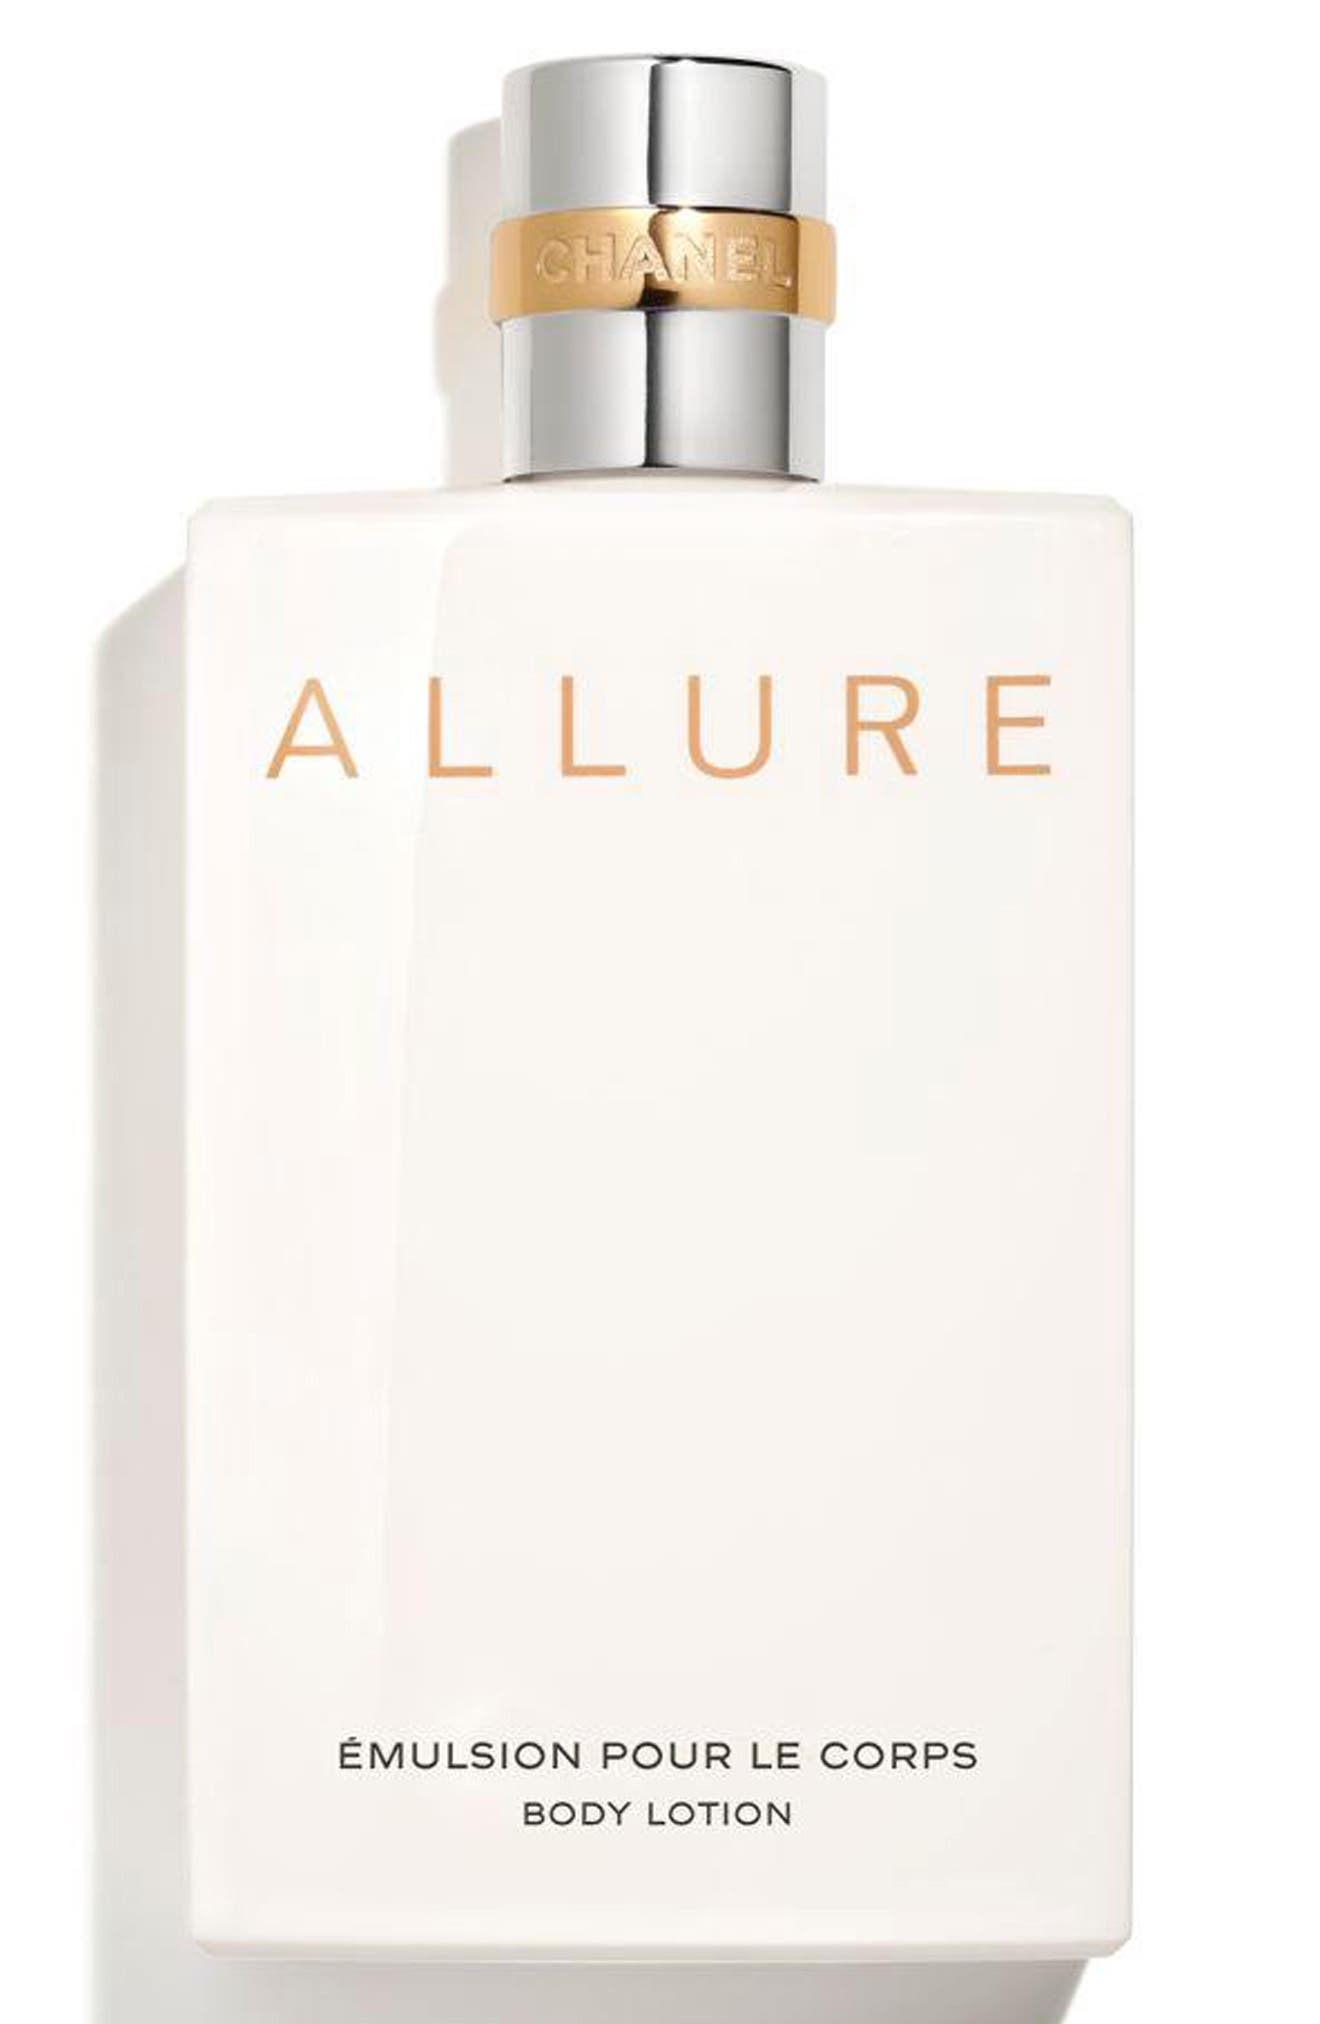 CHANEL ALLURE  Body Lotion | Nordstrom